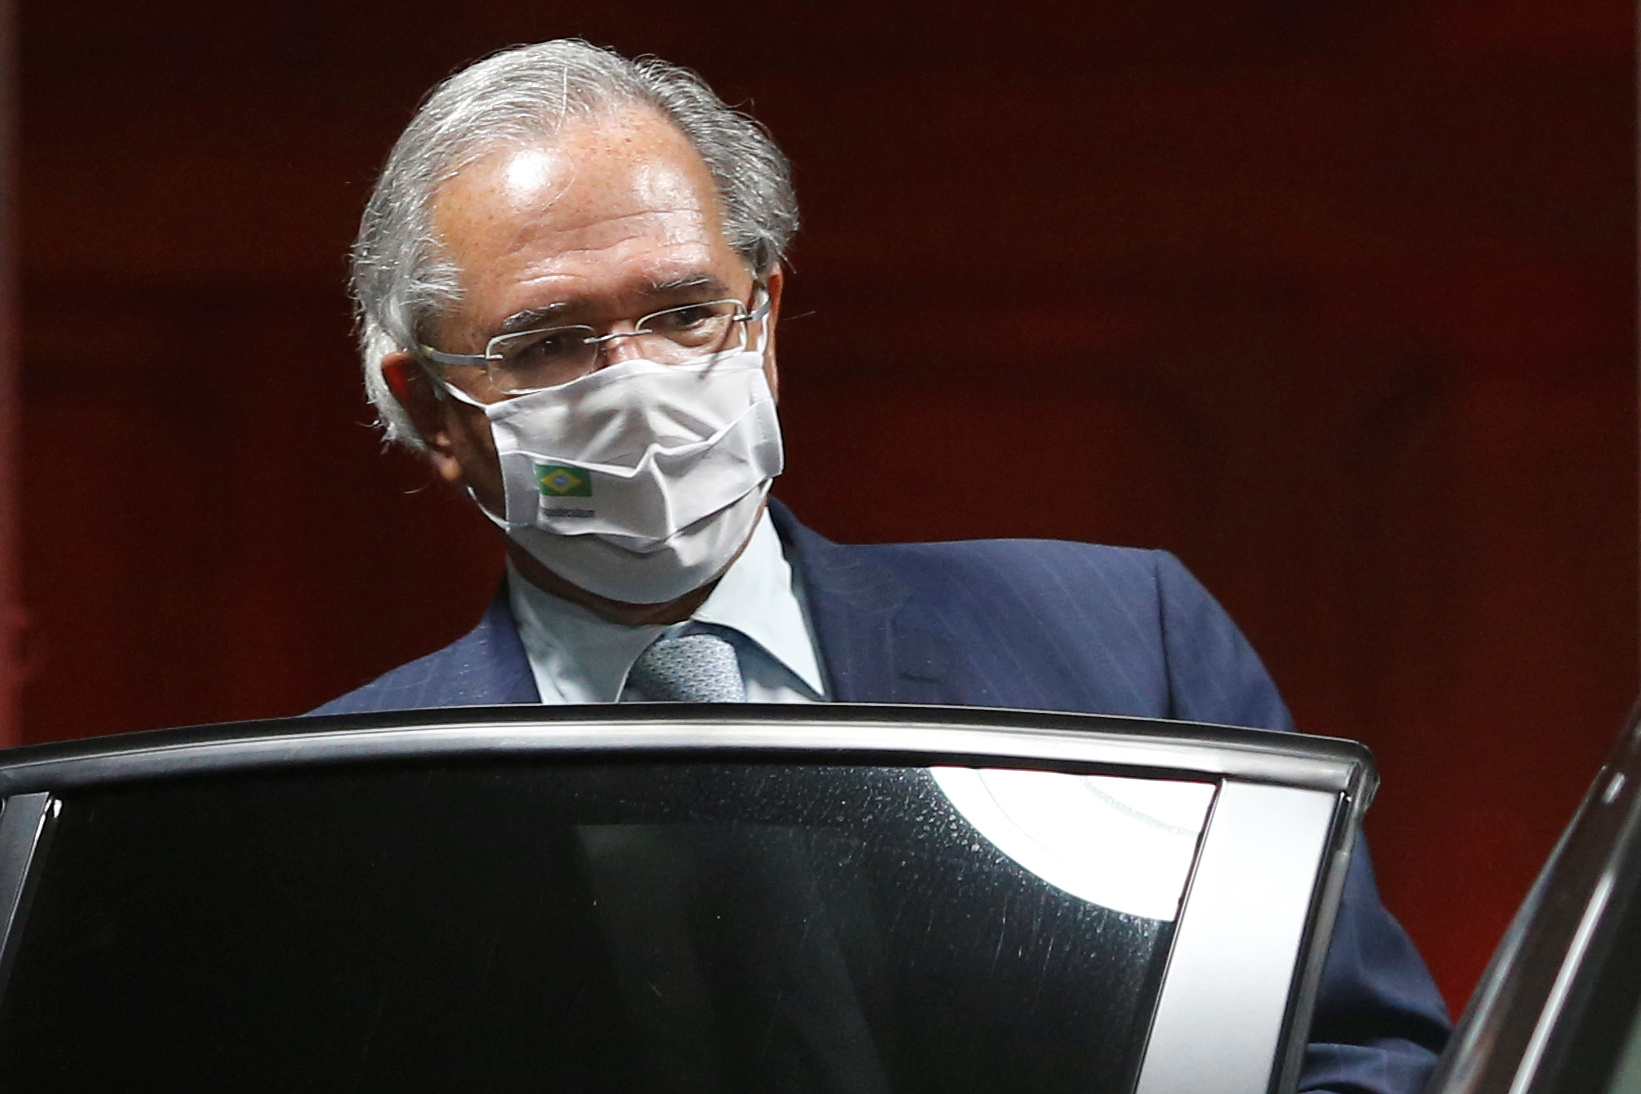 Brazil's Economy Minister Paulo Guedes leaves the Ministry of Economy building in Brasilia, Brazil October 5, 2021. REUTERS/Adriano Machado